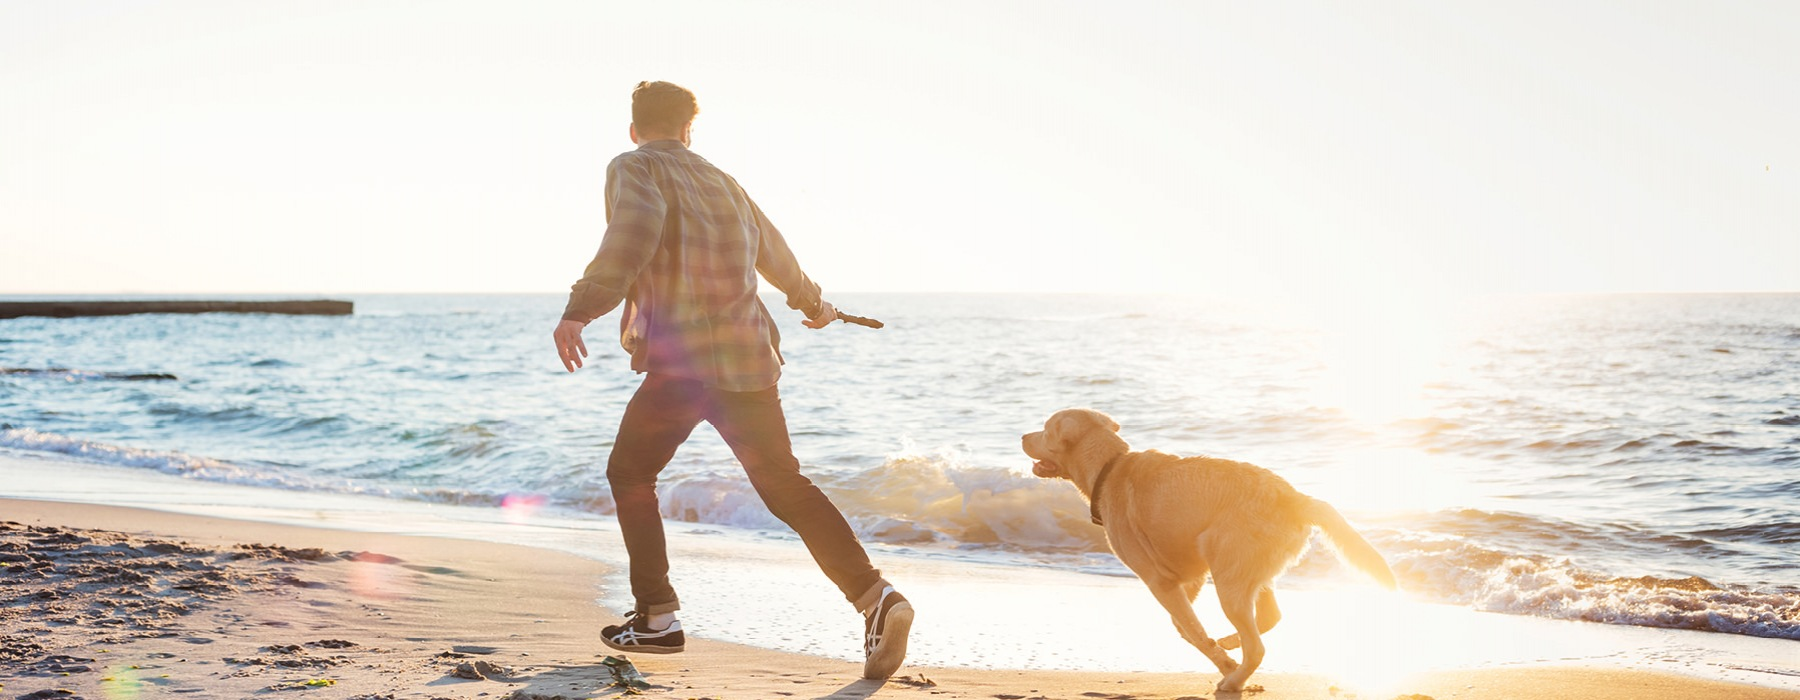 man holding a stick behind him as dog chases him down the beach